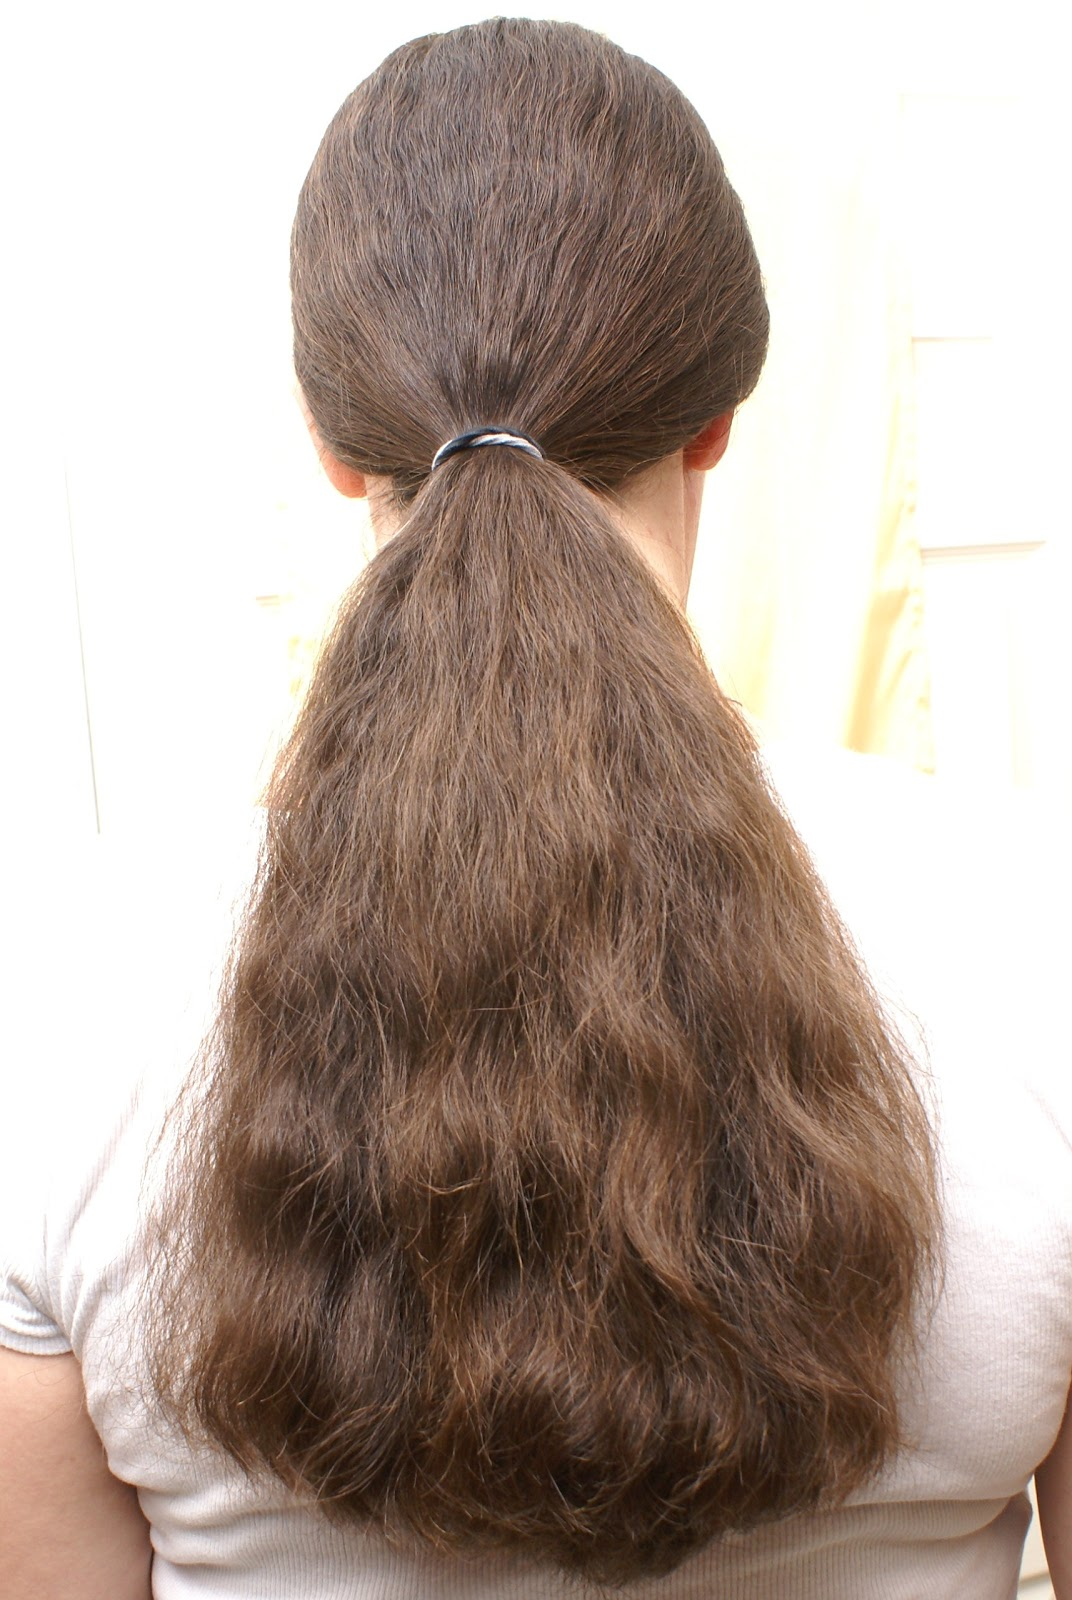 Chipped China: $400 Worth of Hair (alternate title: The ...